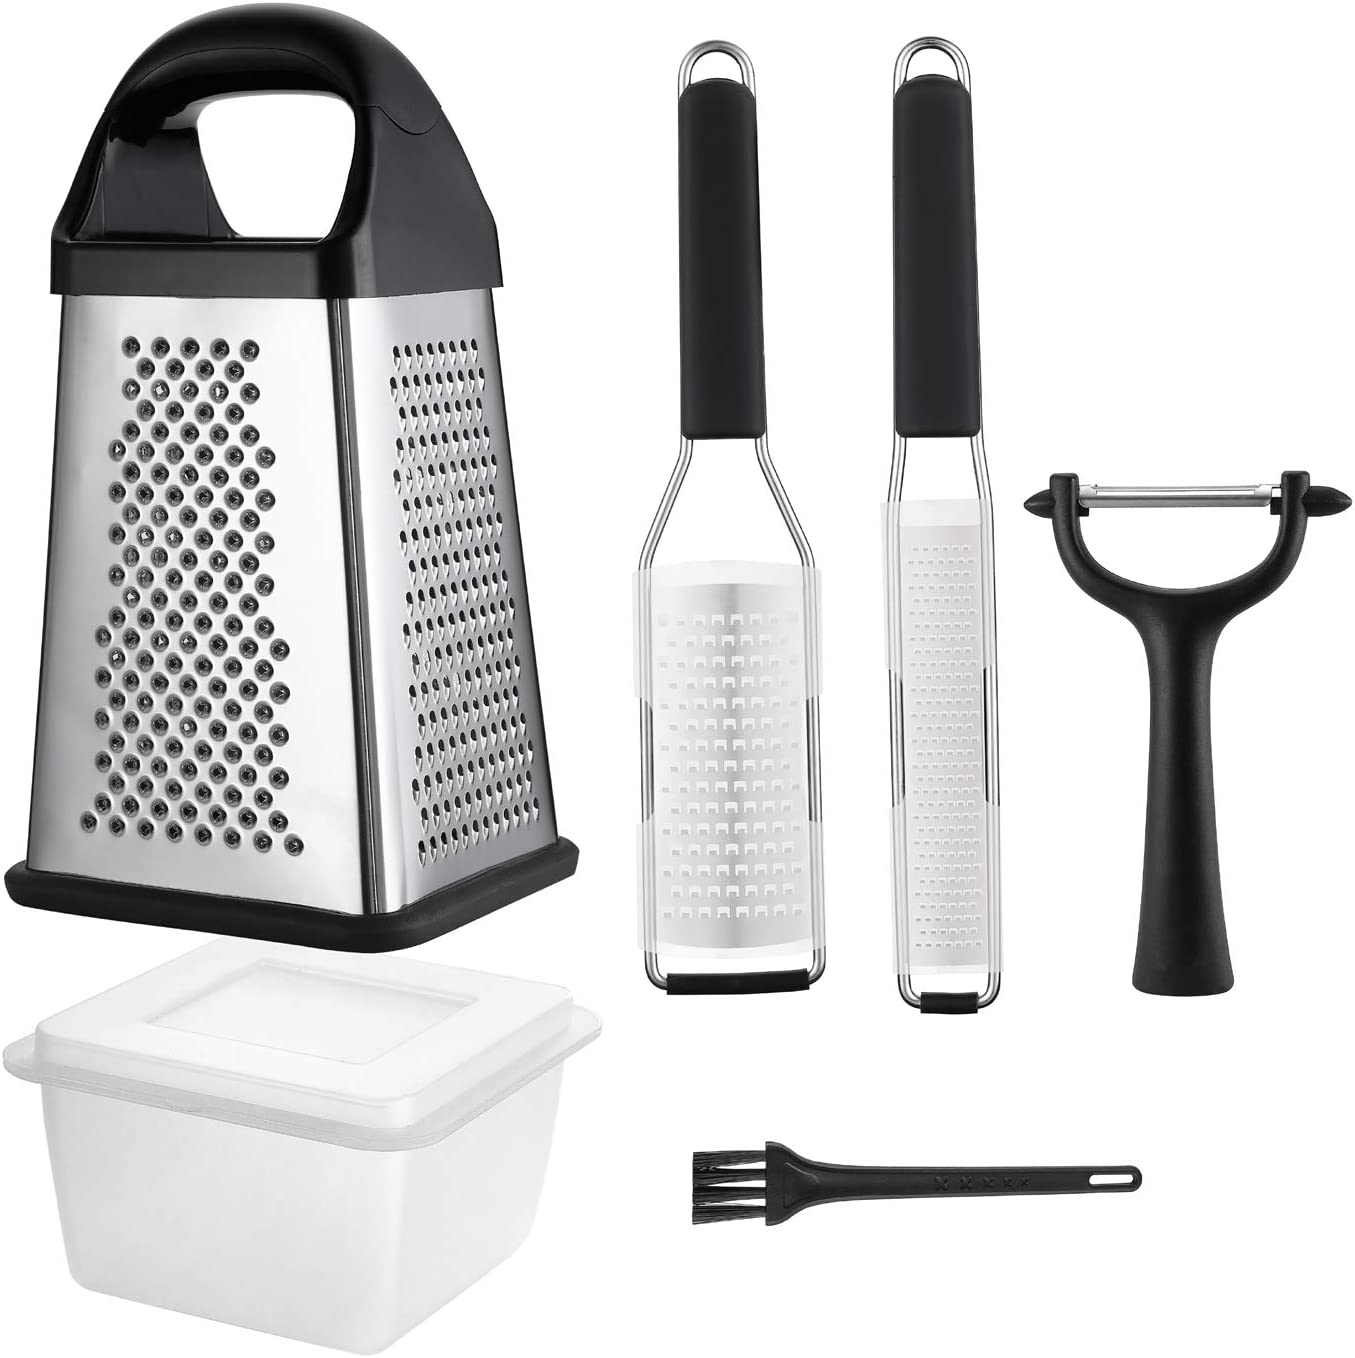 4-Piece Grater Set with 4-Sided Stainless Steel Box Grater,Set of 2 Grinders, Fruit&Vegetable Y-Peeler,and Cleaning Brush for Parmesan Cheese, Ginger,Lemon,Garlic,Nutmeg,Chocolate,Vegetables and Fruit